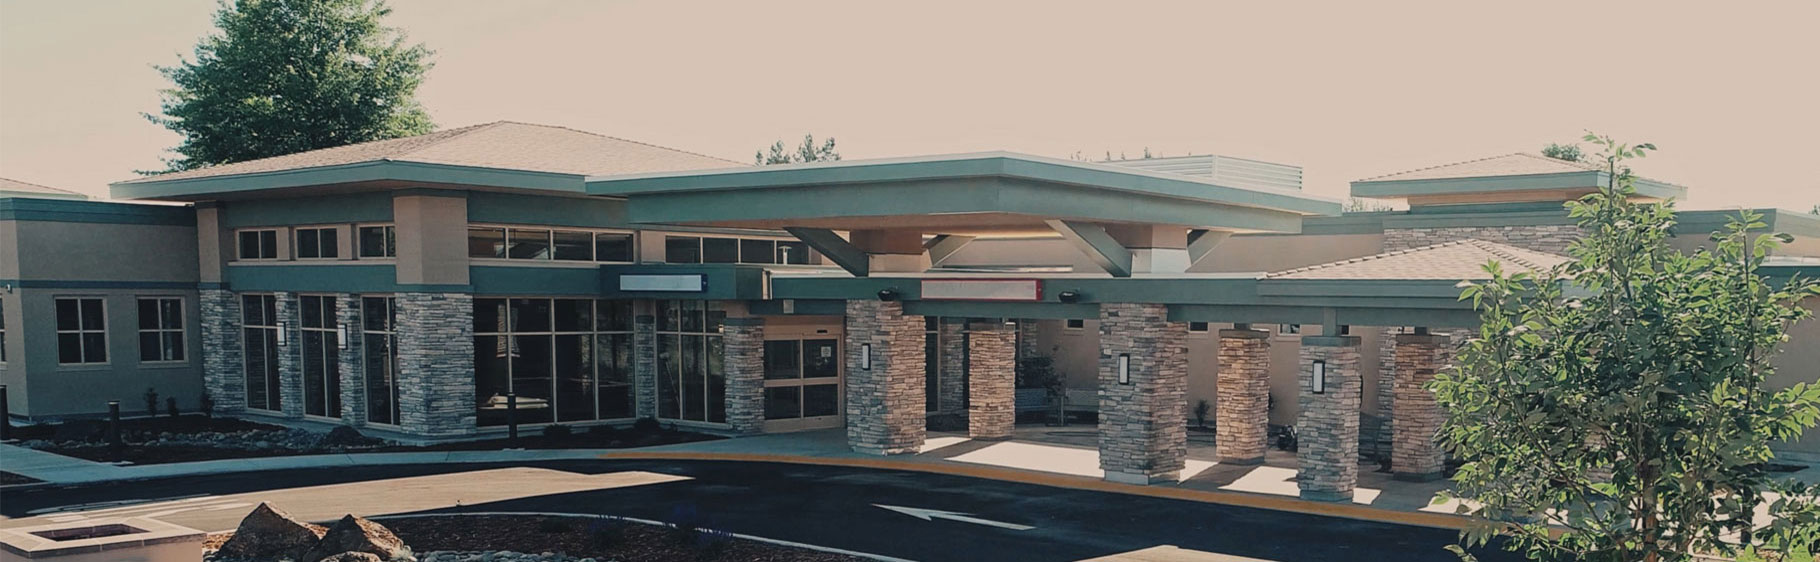 Banner picture of Mayers Memorial Healthcare Hospital. There is two trees and some rocks outside of the building